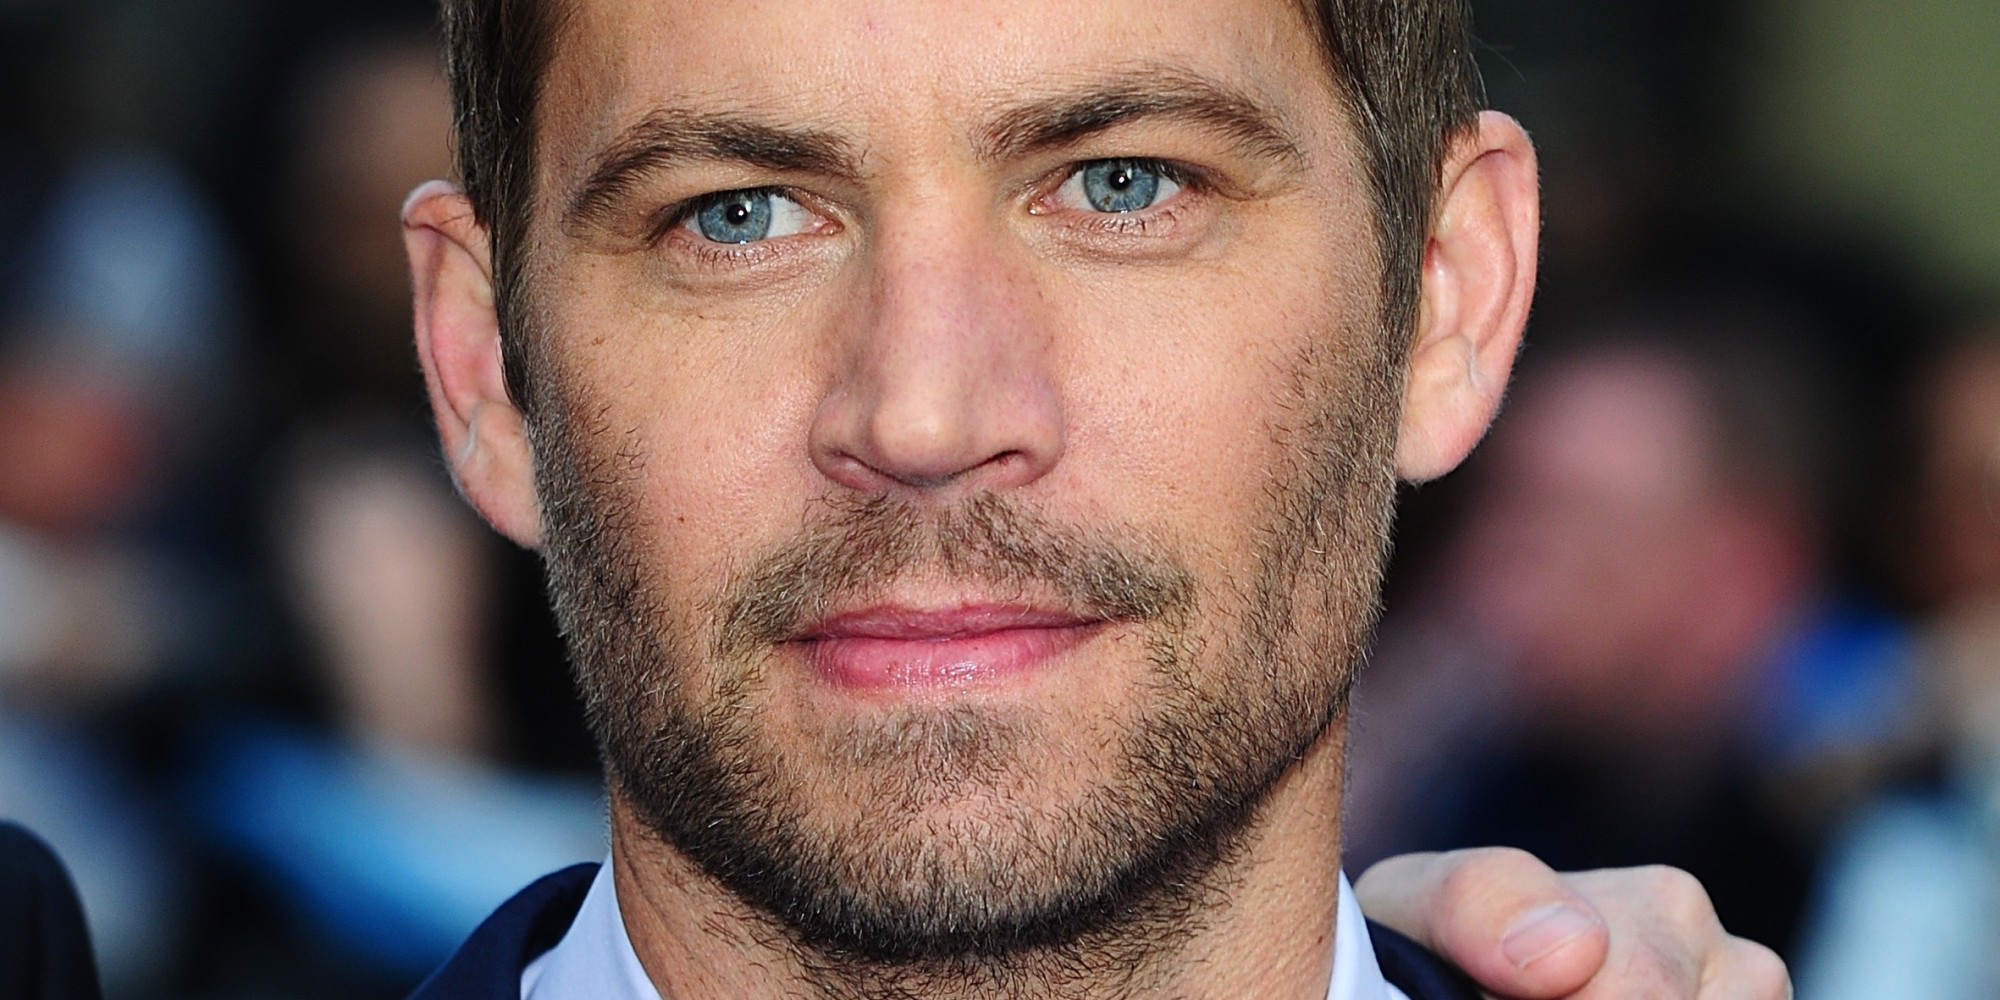 Paul Walker Dead Fast And The Furious Actor Dies In Car Crash